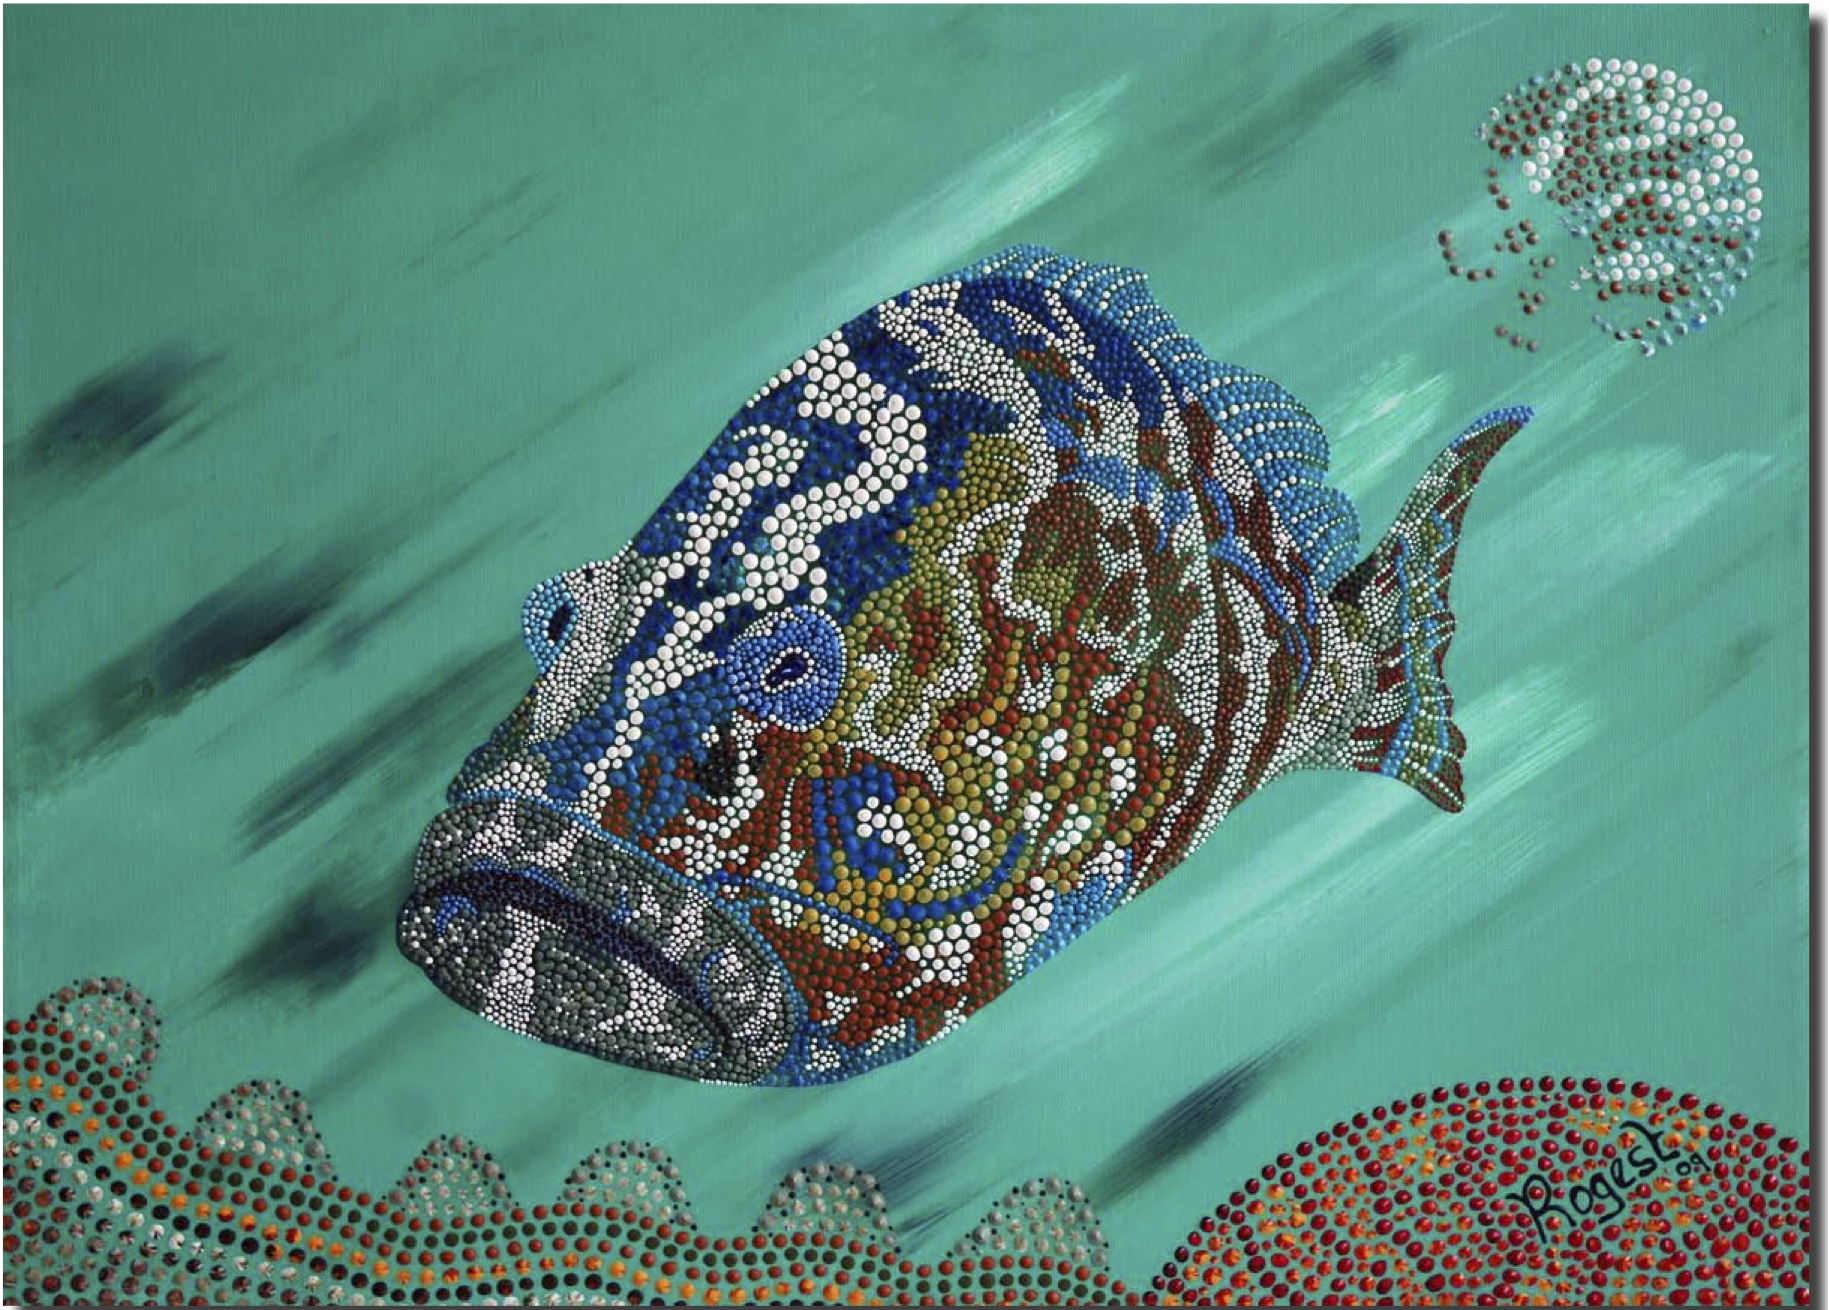 famous fish painting